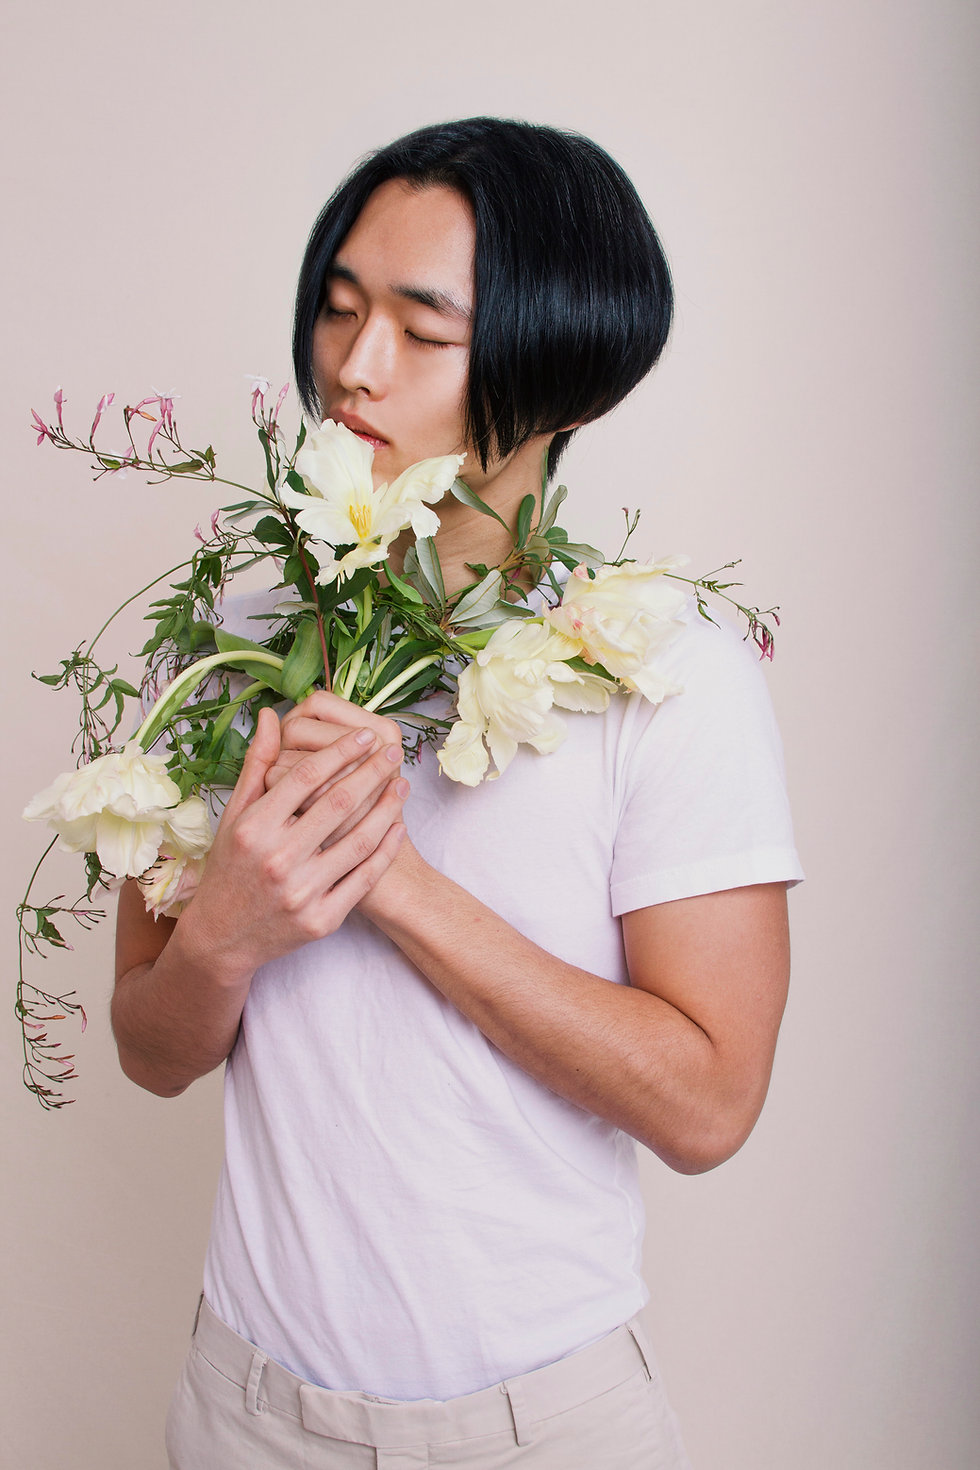 A young man smelling a bouquet of flowers with his eyes shut